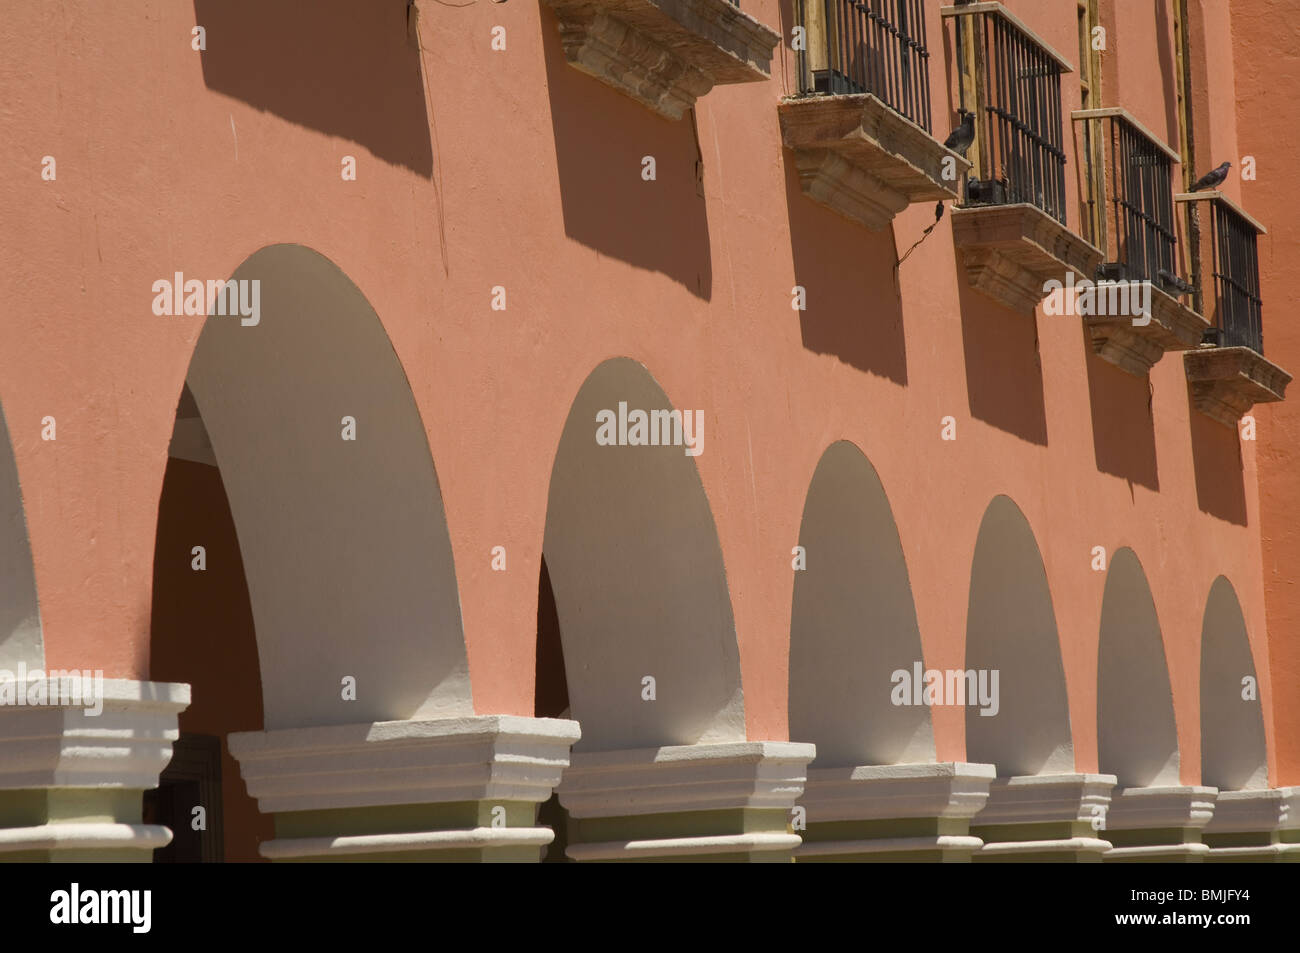 Historic town of Dolores Hidalgo, Colonnade, Province of Guanajuato, Mexico Stock Photo